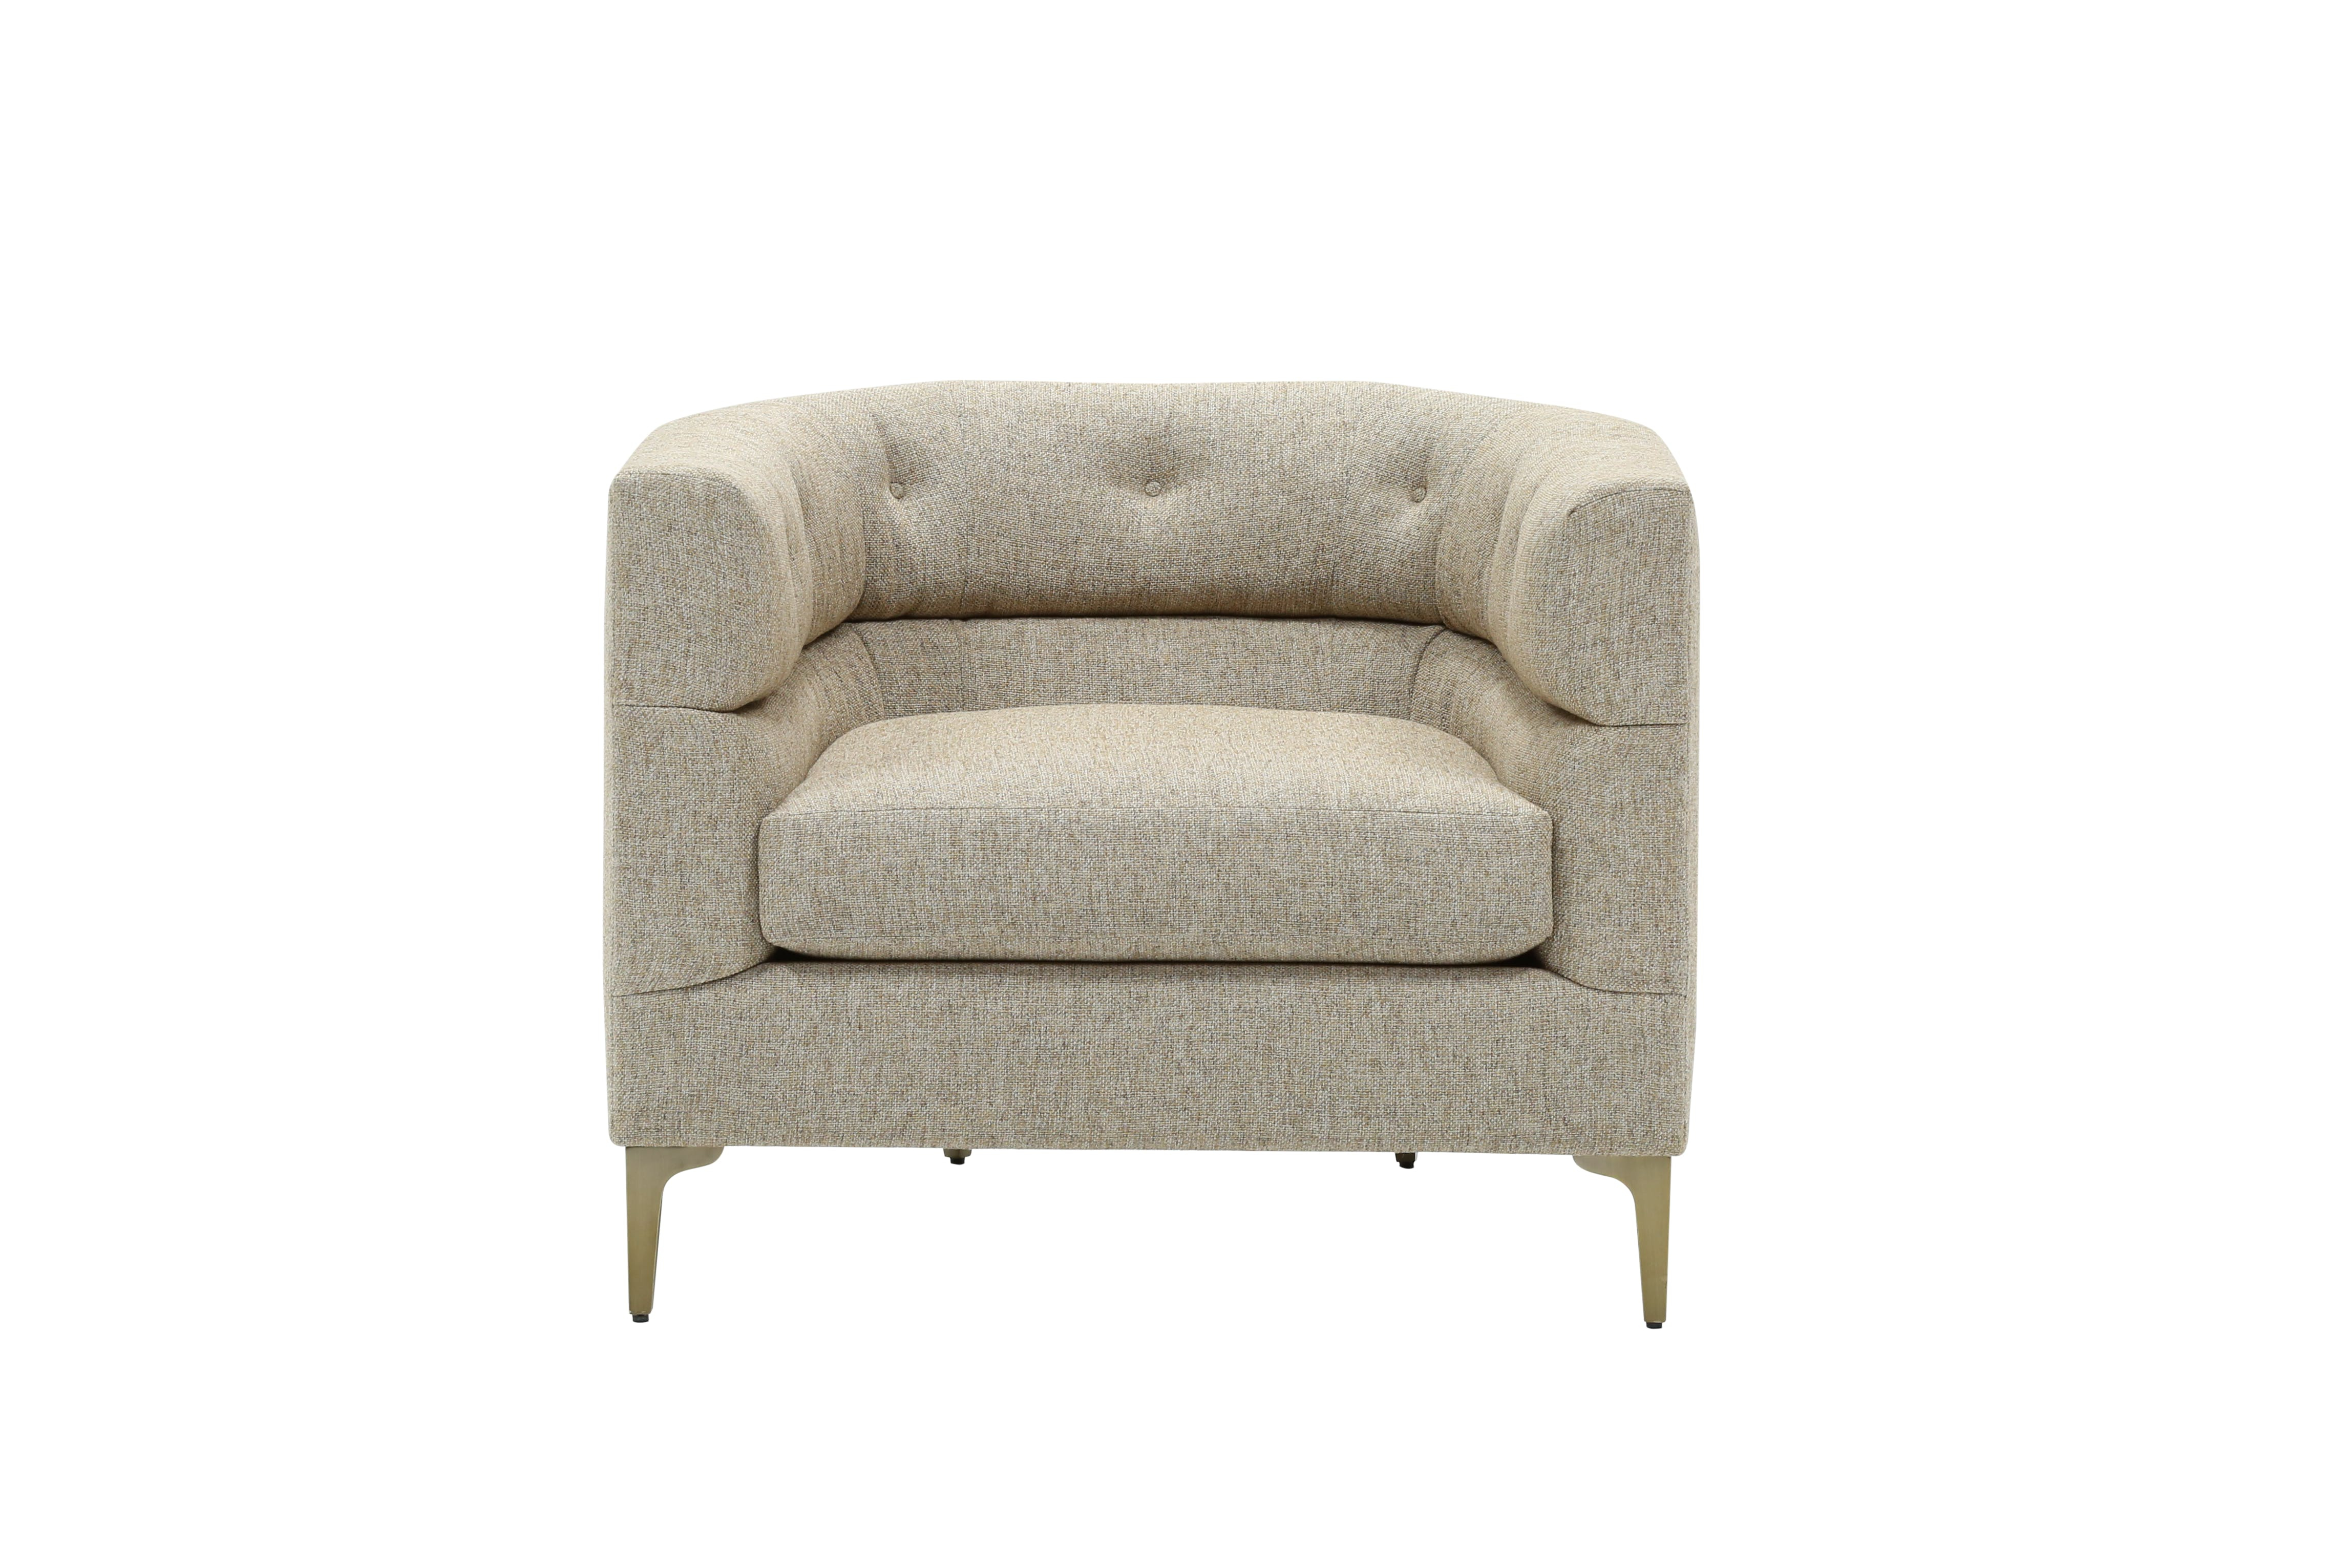 Nate Berkus Just Launched A Home Collection With Hubby Jeremiah Throughout Gwen Sofa Chairs By Nate Berkus And Jeremiah Brent (Image 9 of 20)